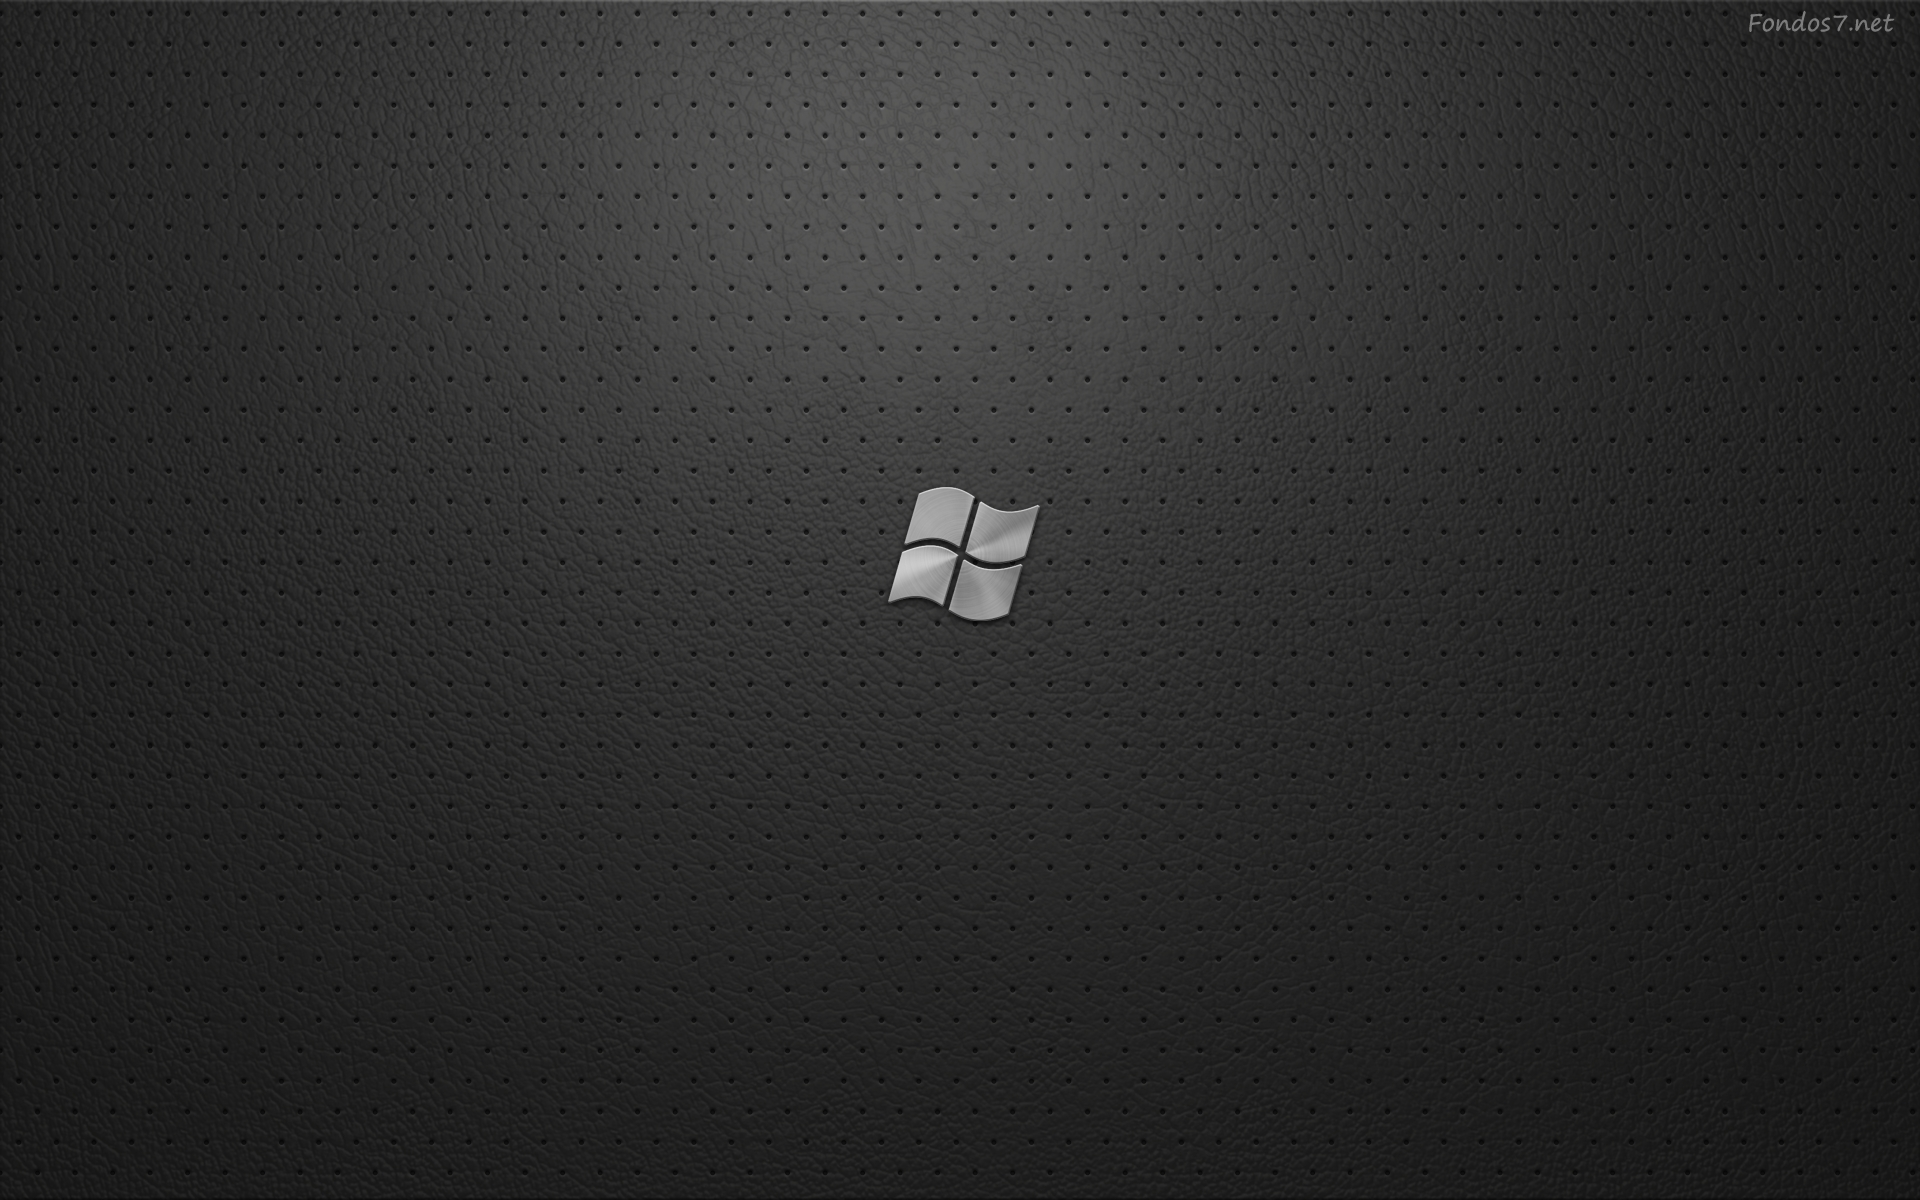 Descargar Fondos de pantalla windows seven black hd widescreen Gratis 1920x1200